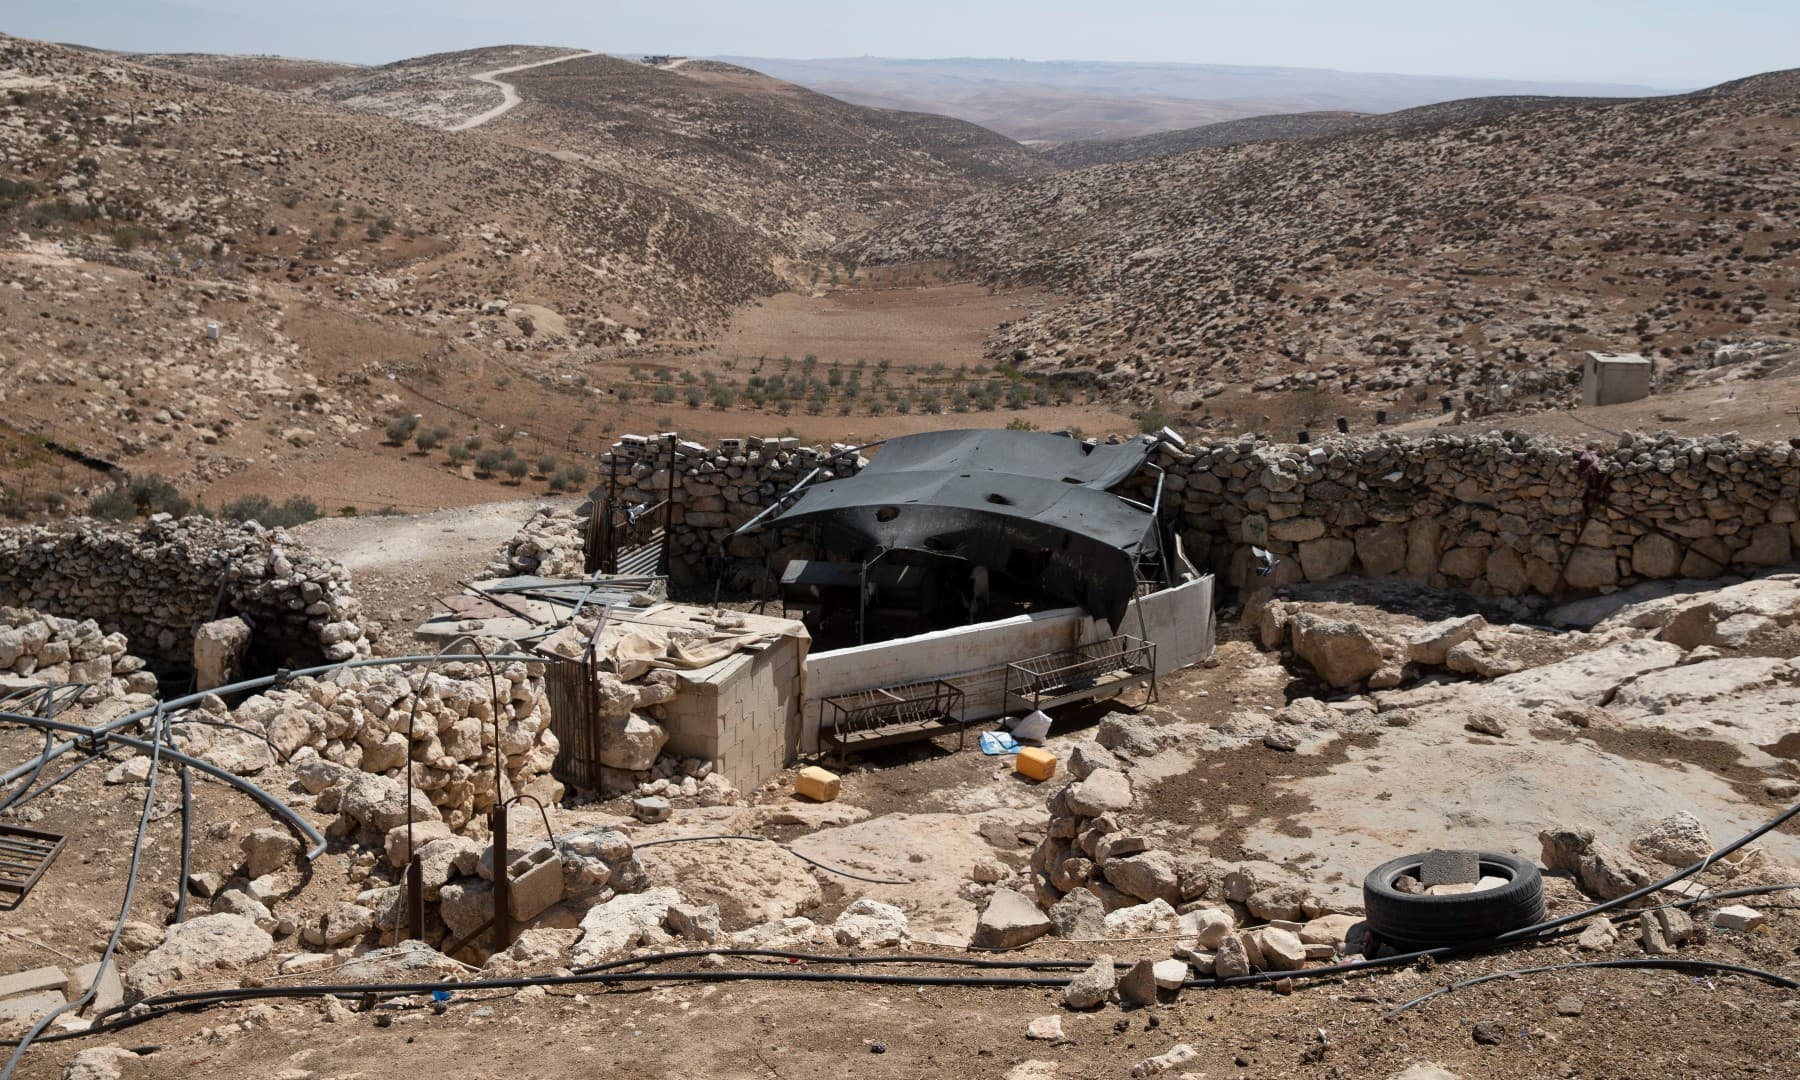 A stockyard that suffered damage following a settlers' attack from nearby settlement outposts on the Bedouin community, in the West Bank village of Al-Mufagara. Sept. 30. — AP